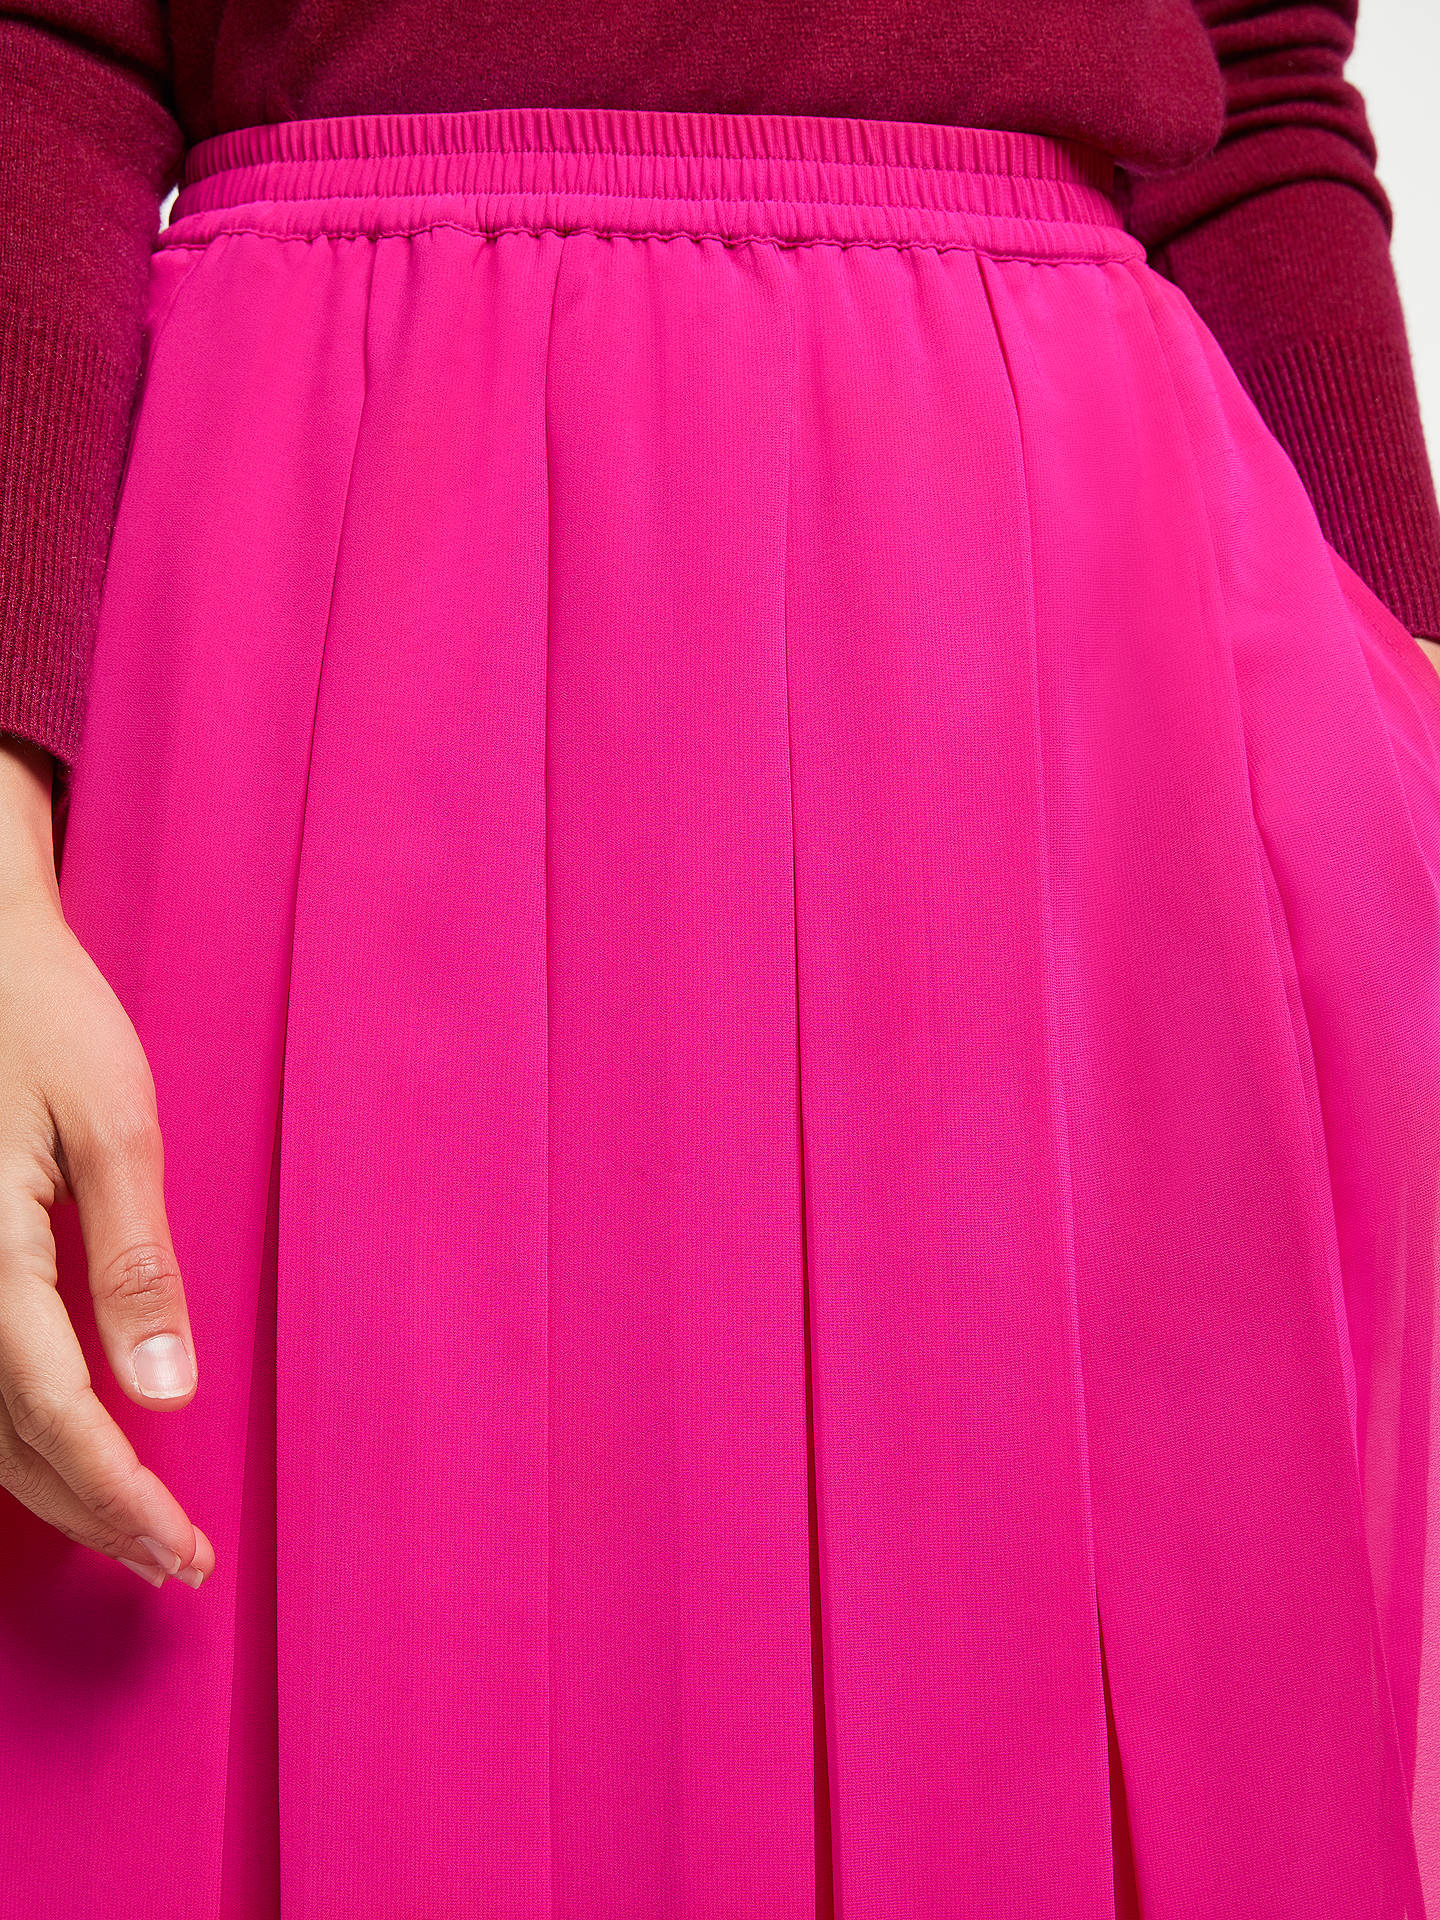 BuyJohn Lewis & Partners Box Pleat Pull On Skirt, Bright Pink, 8 Online at johnlewis.com